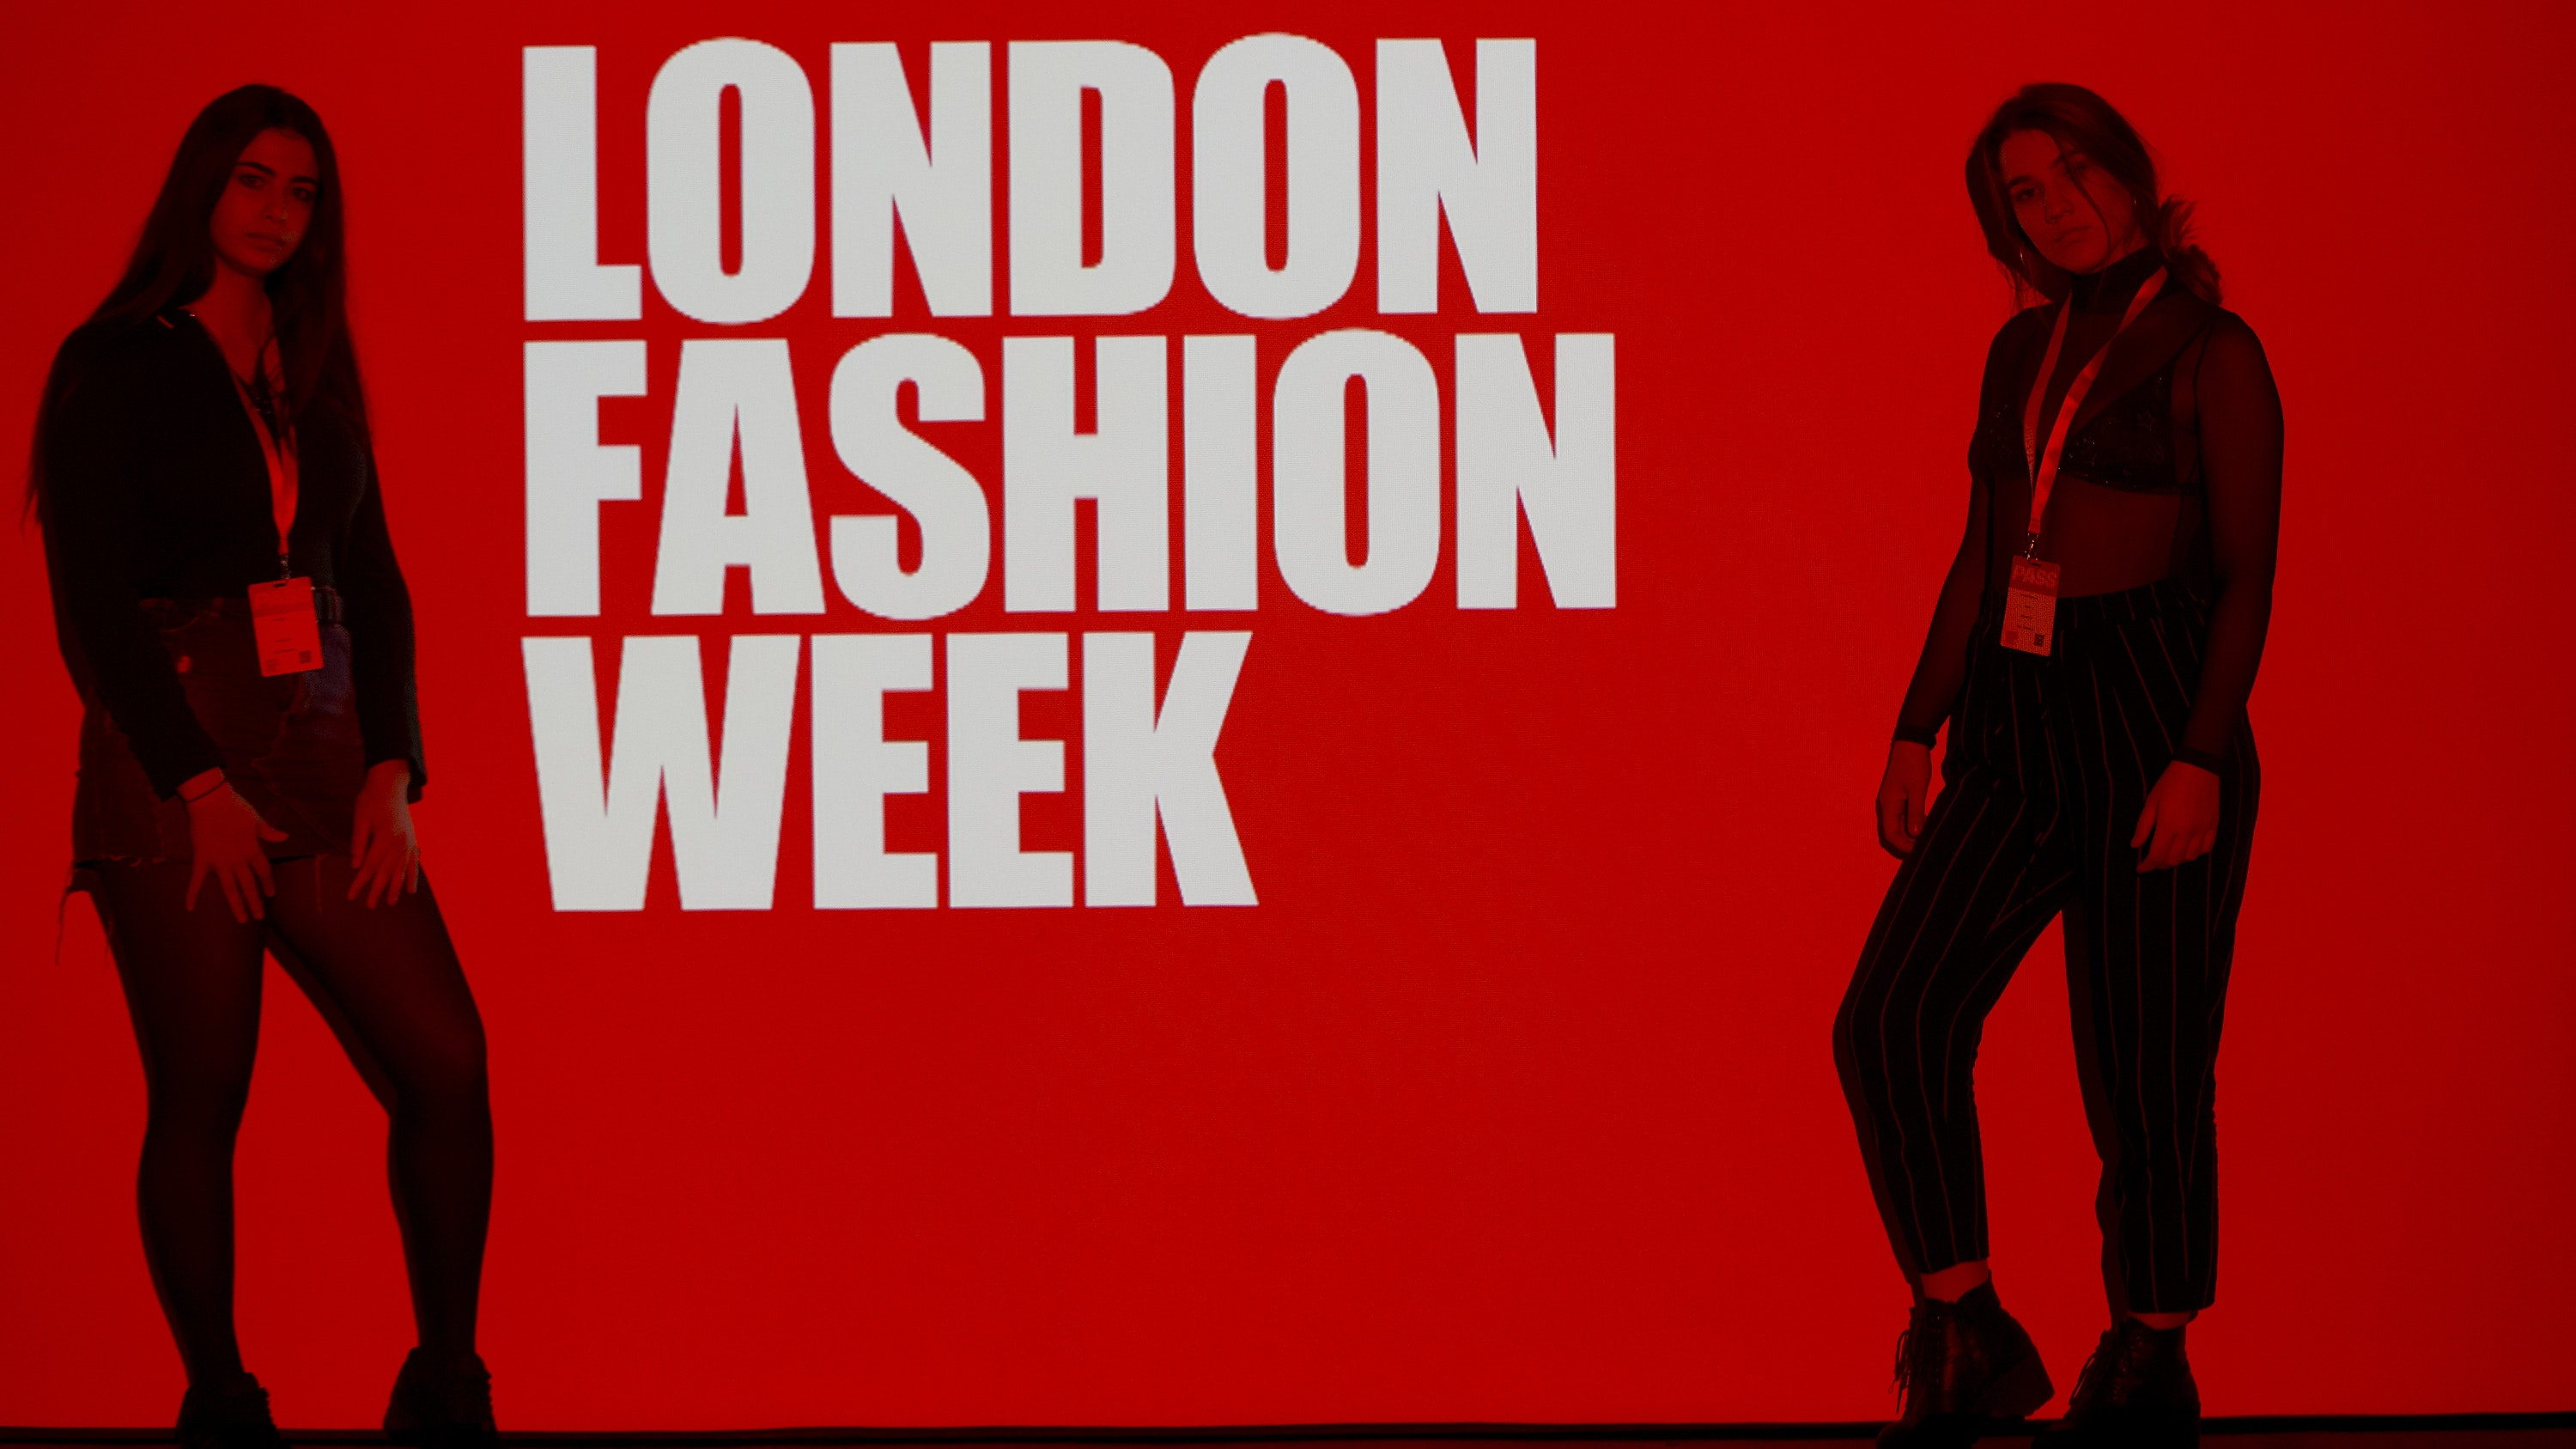 Victoria Beckham And Burberry Set To Be Highlights Of London Fashion Week Bt